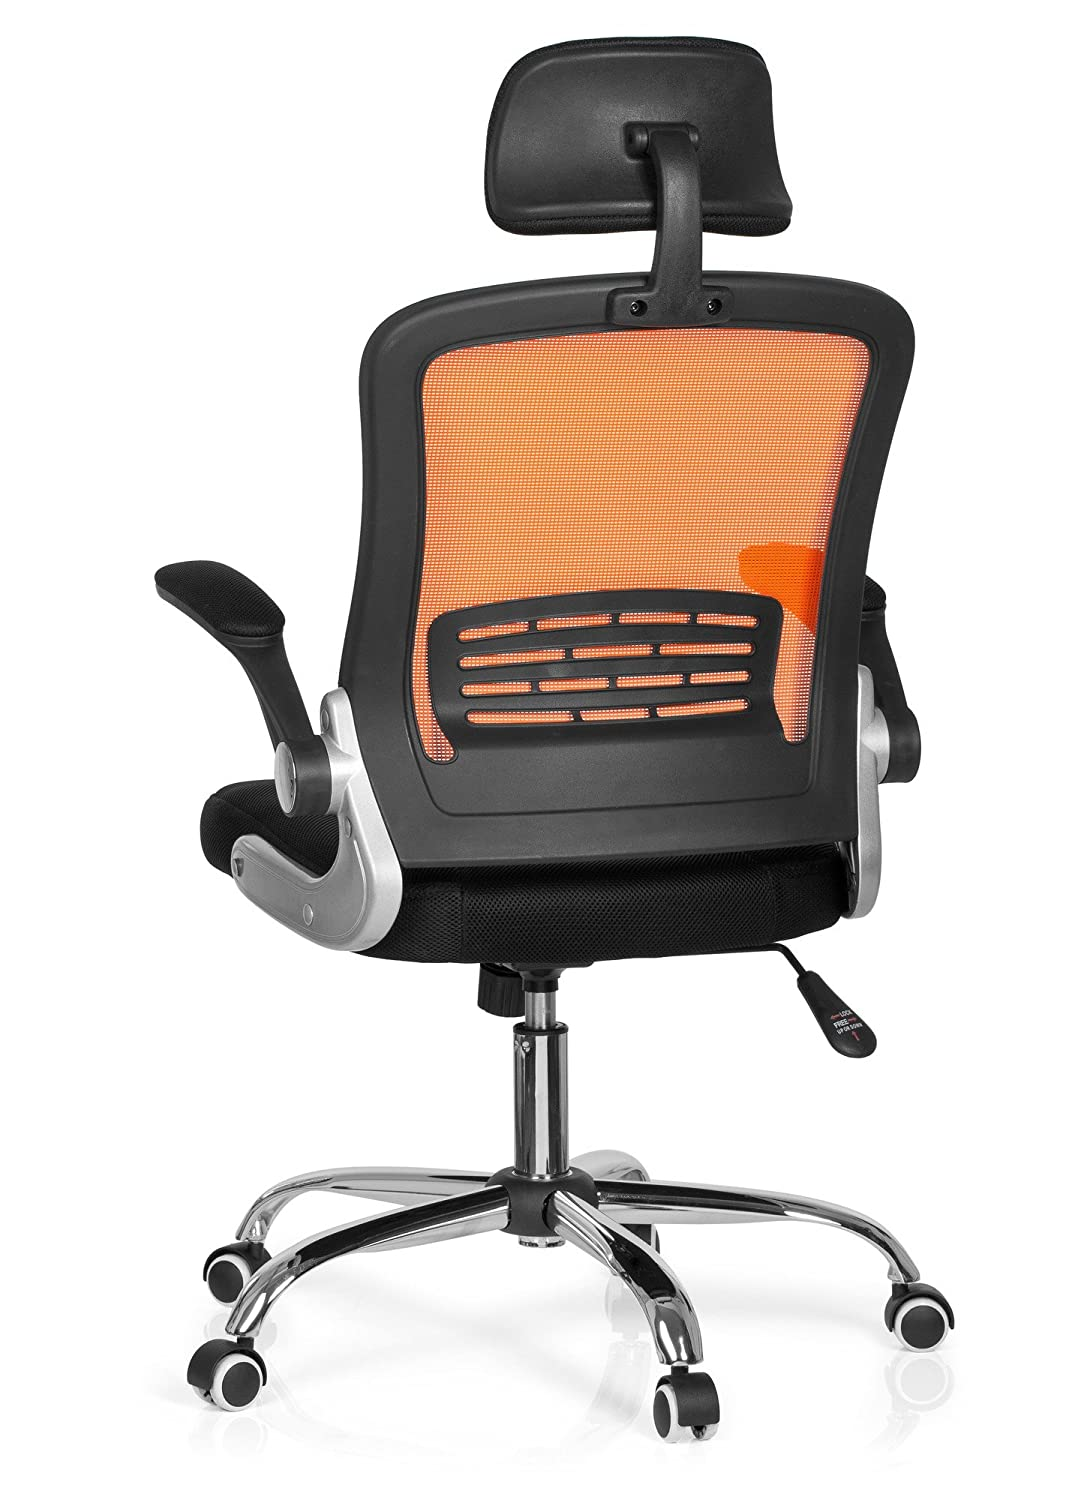 Hjh Office Vendo Net Silla de oficina Multicolor (Orange/Black ...